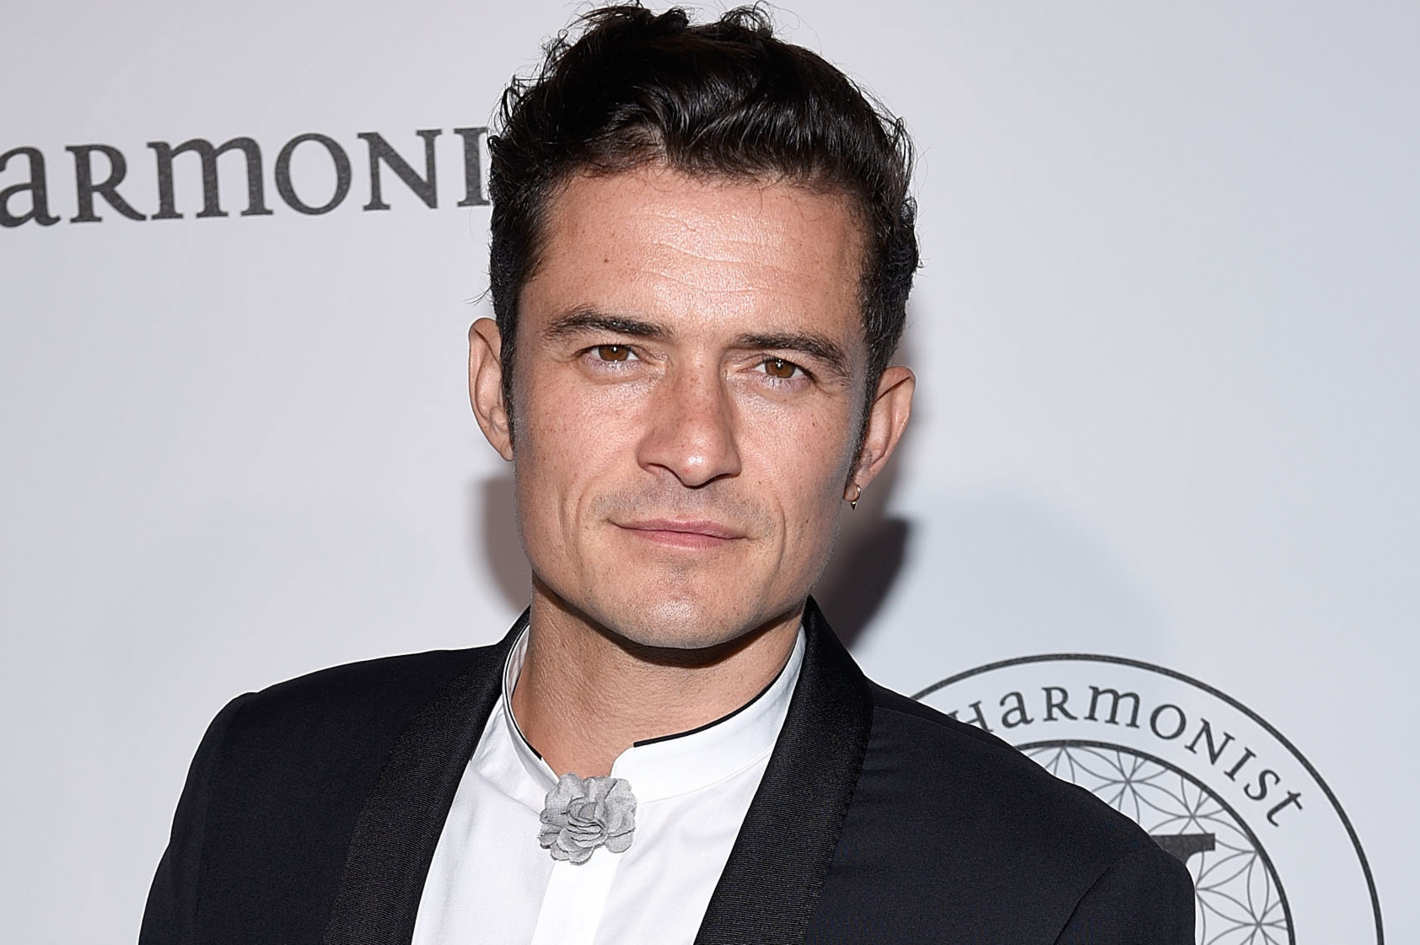 Orlando Bloom Follows Up Dnc Stardom By Joining Andy Sambergs Tour